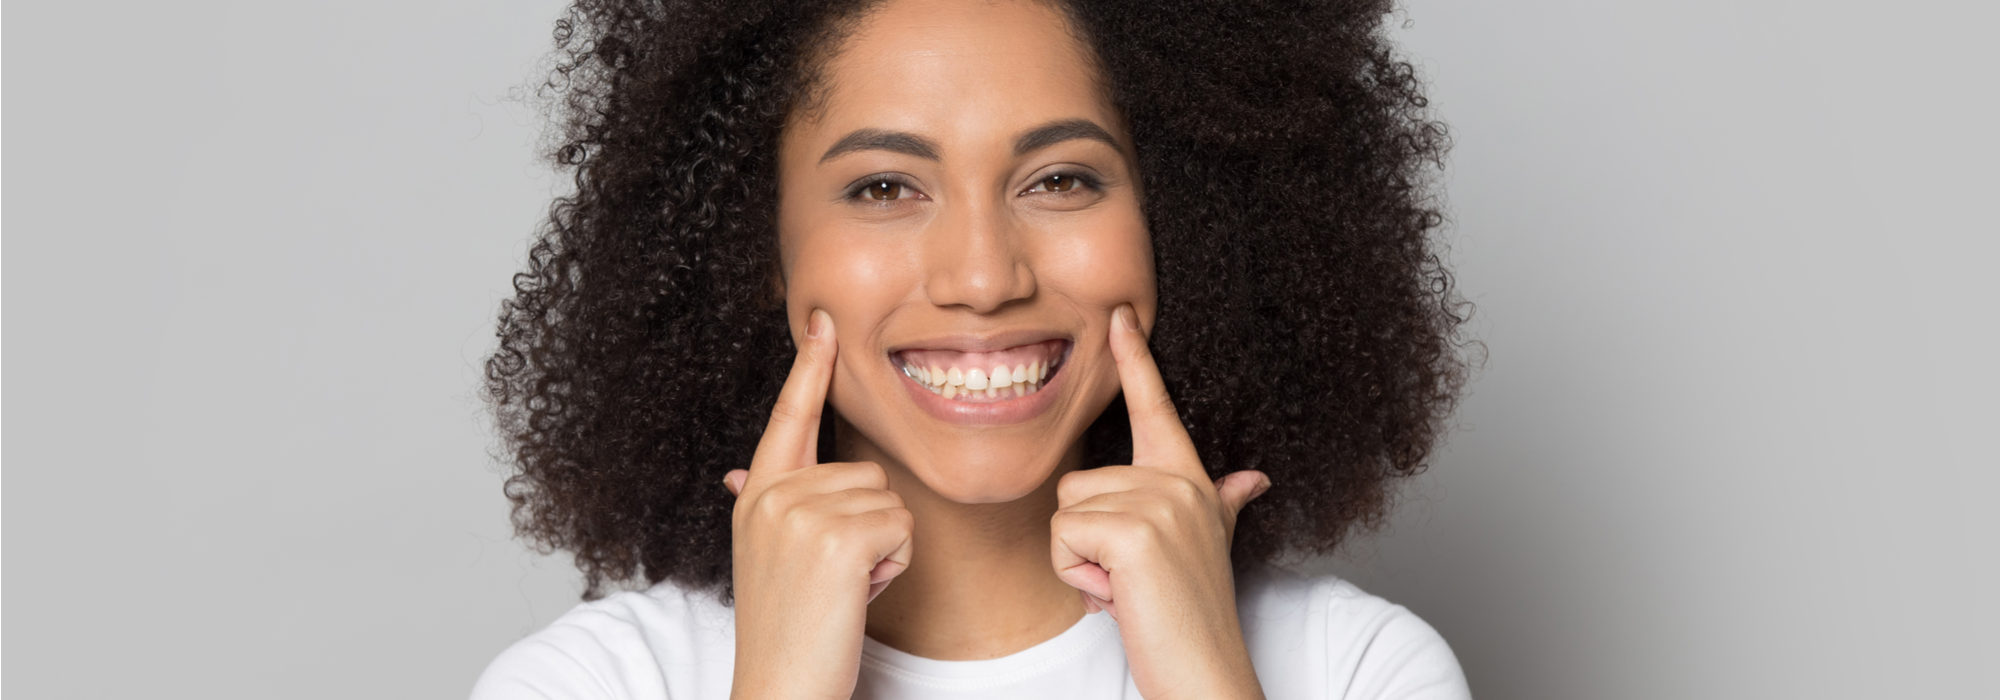 A young, lovely, African American female student with brown hair and brown eyes, wearing a white t-shirt points to her smile with both hands.